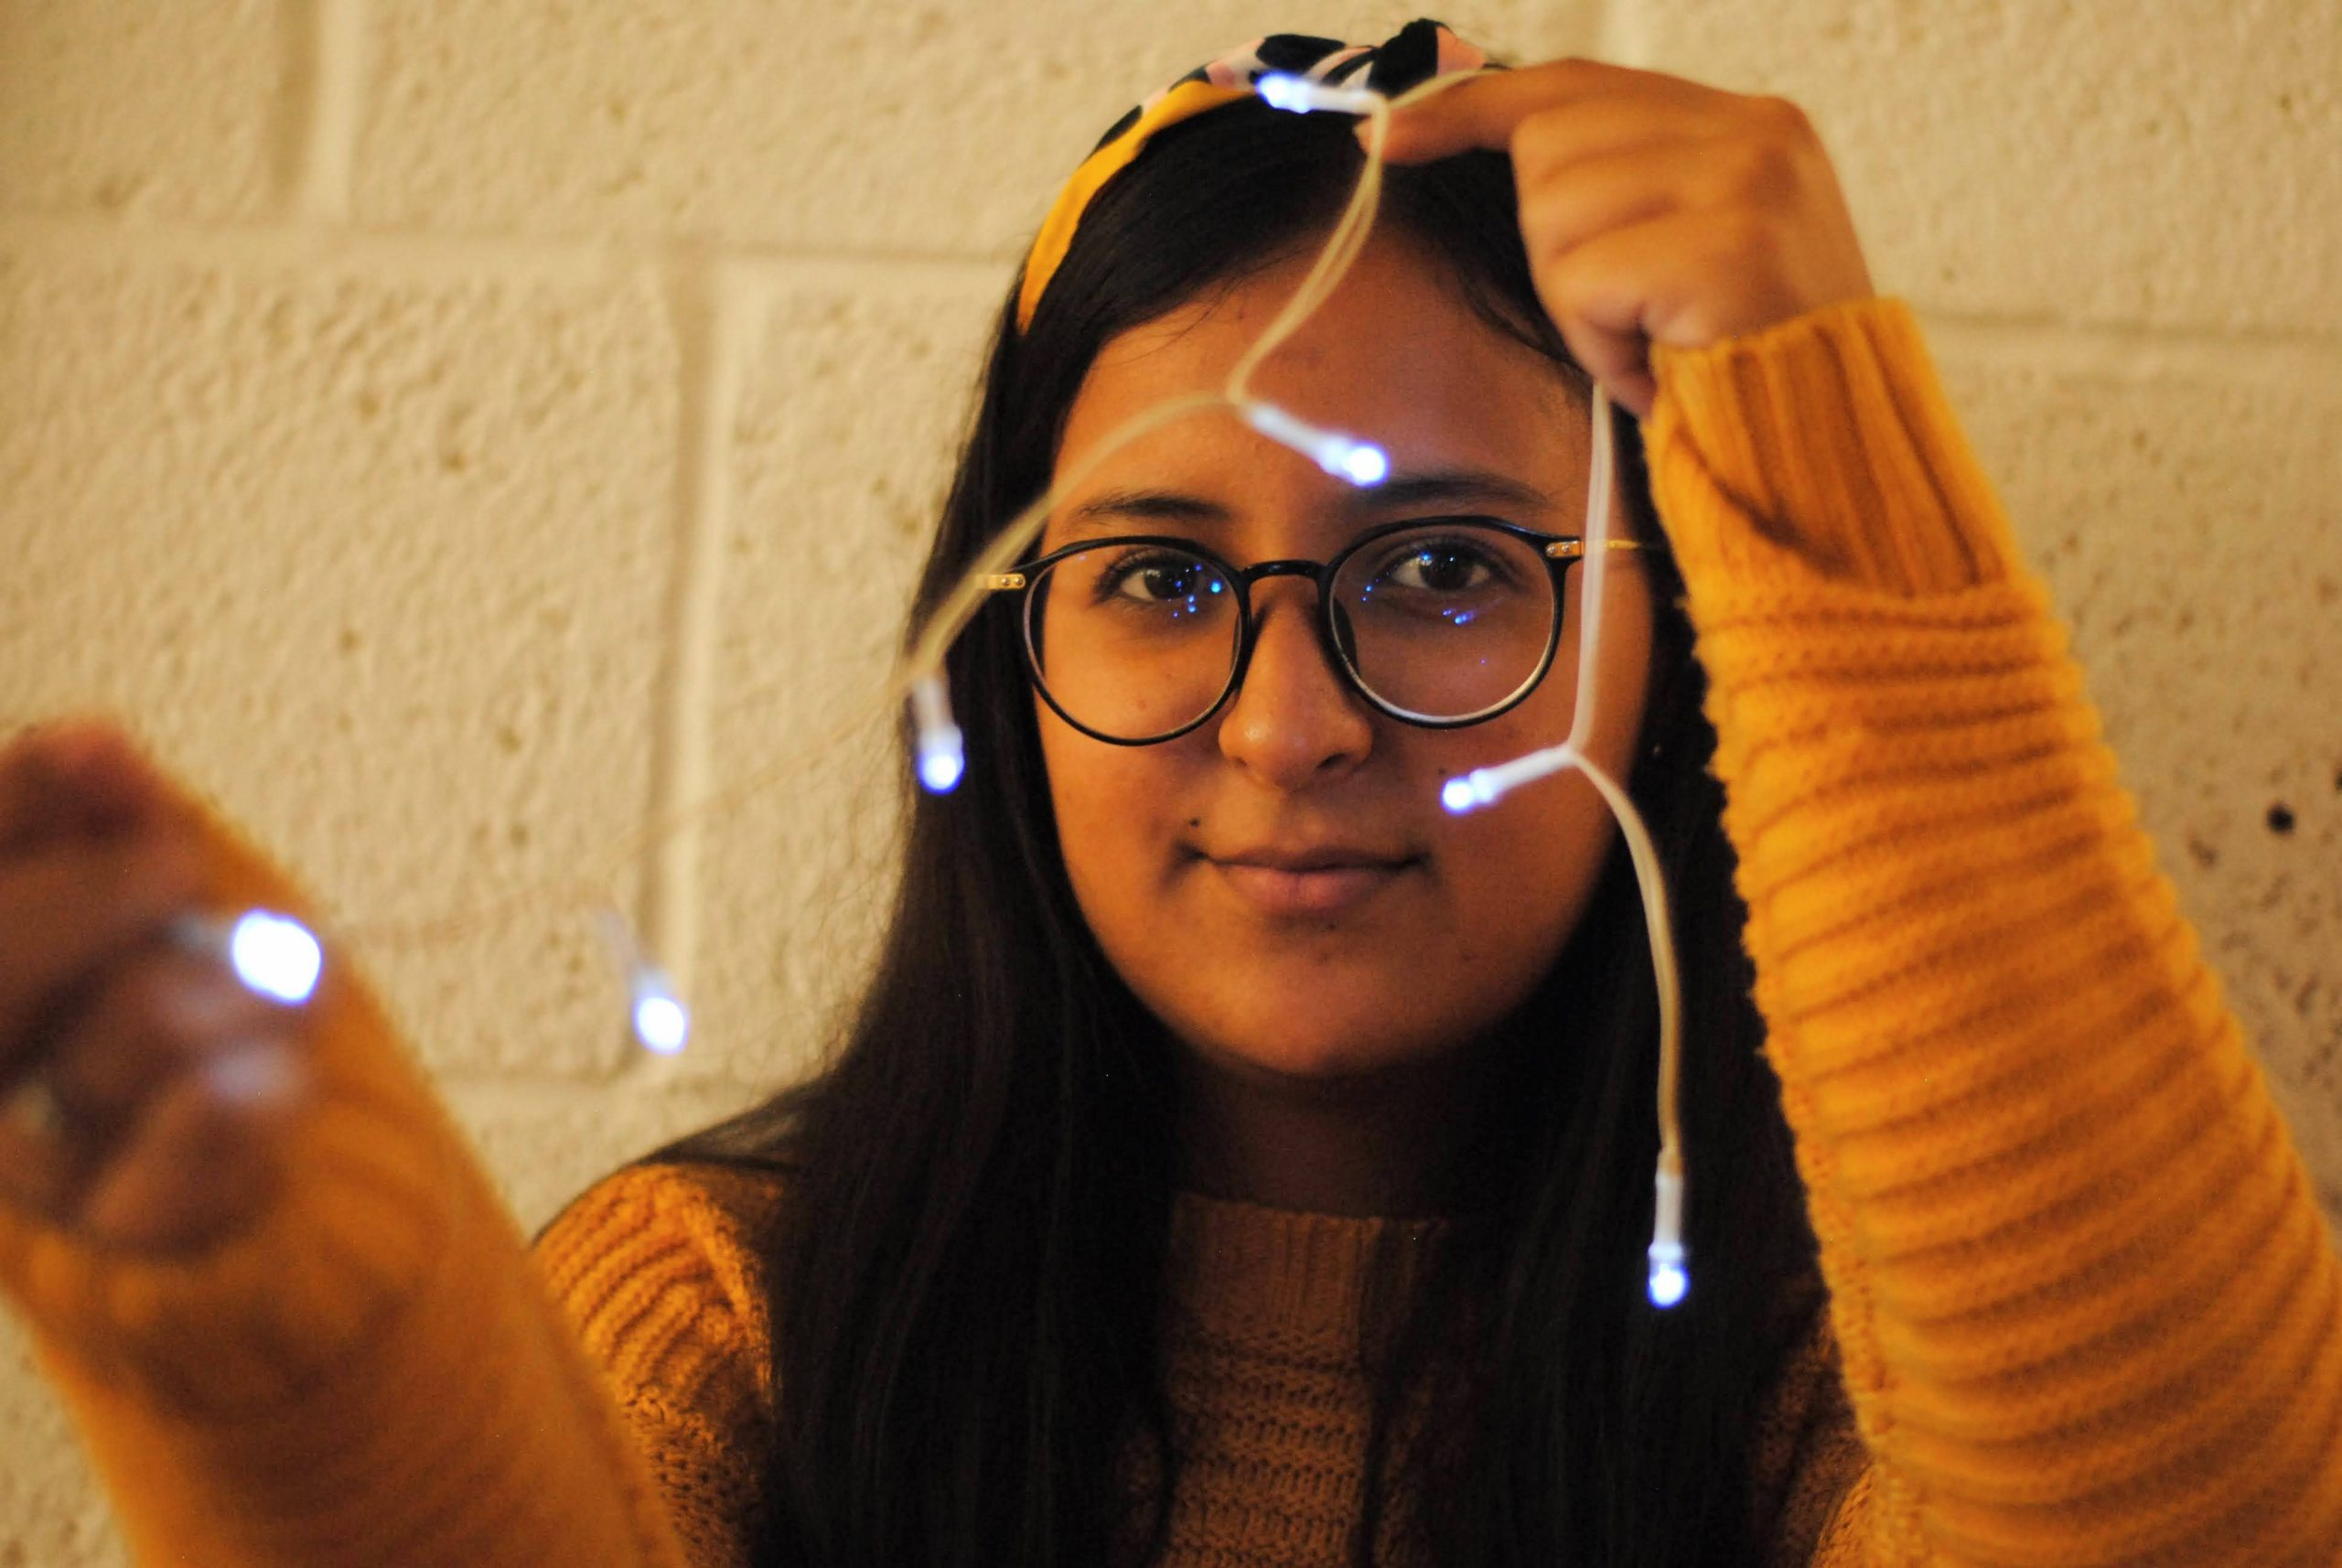 portrait image of girl wearing glasses and yellow jumper holding fairy lights